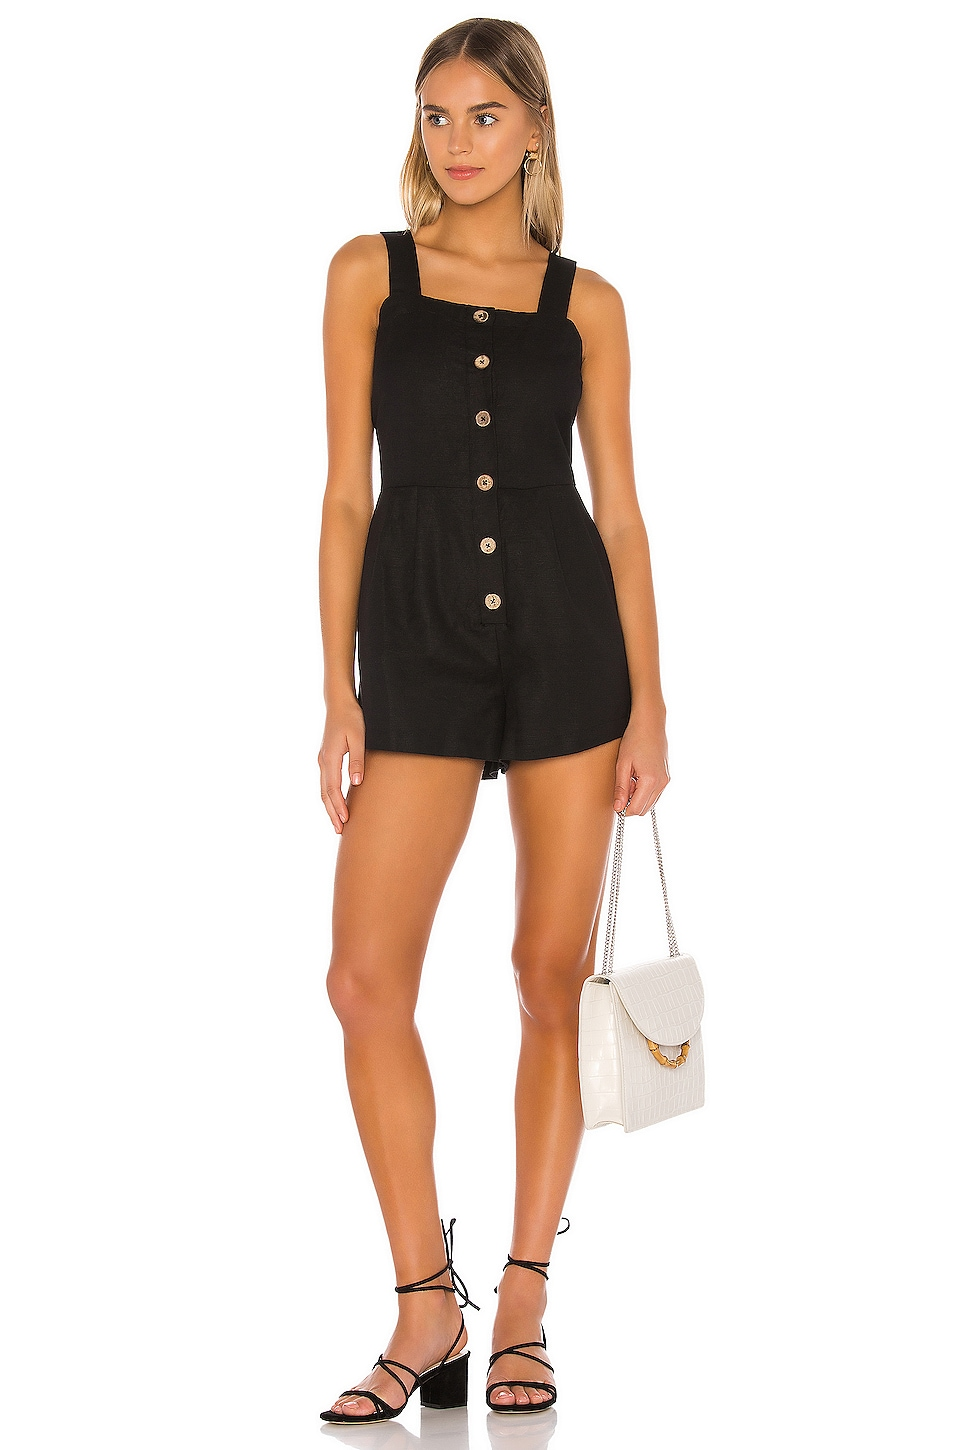 Seafolly Button Up Romper in Black